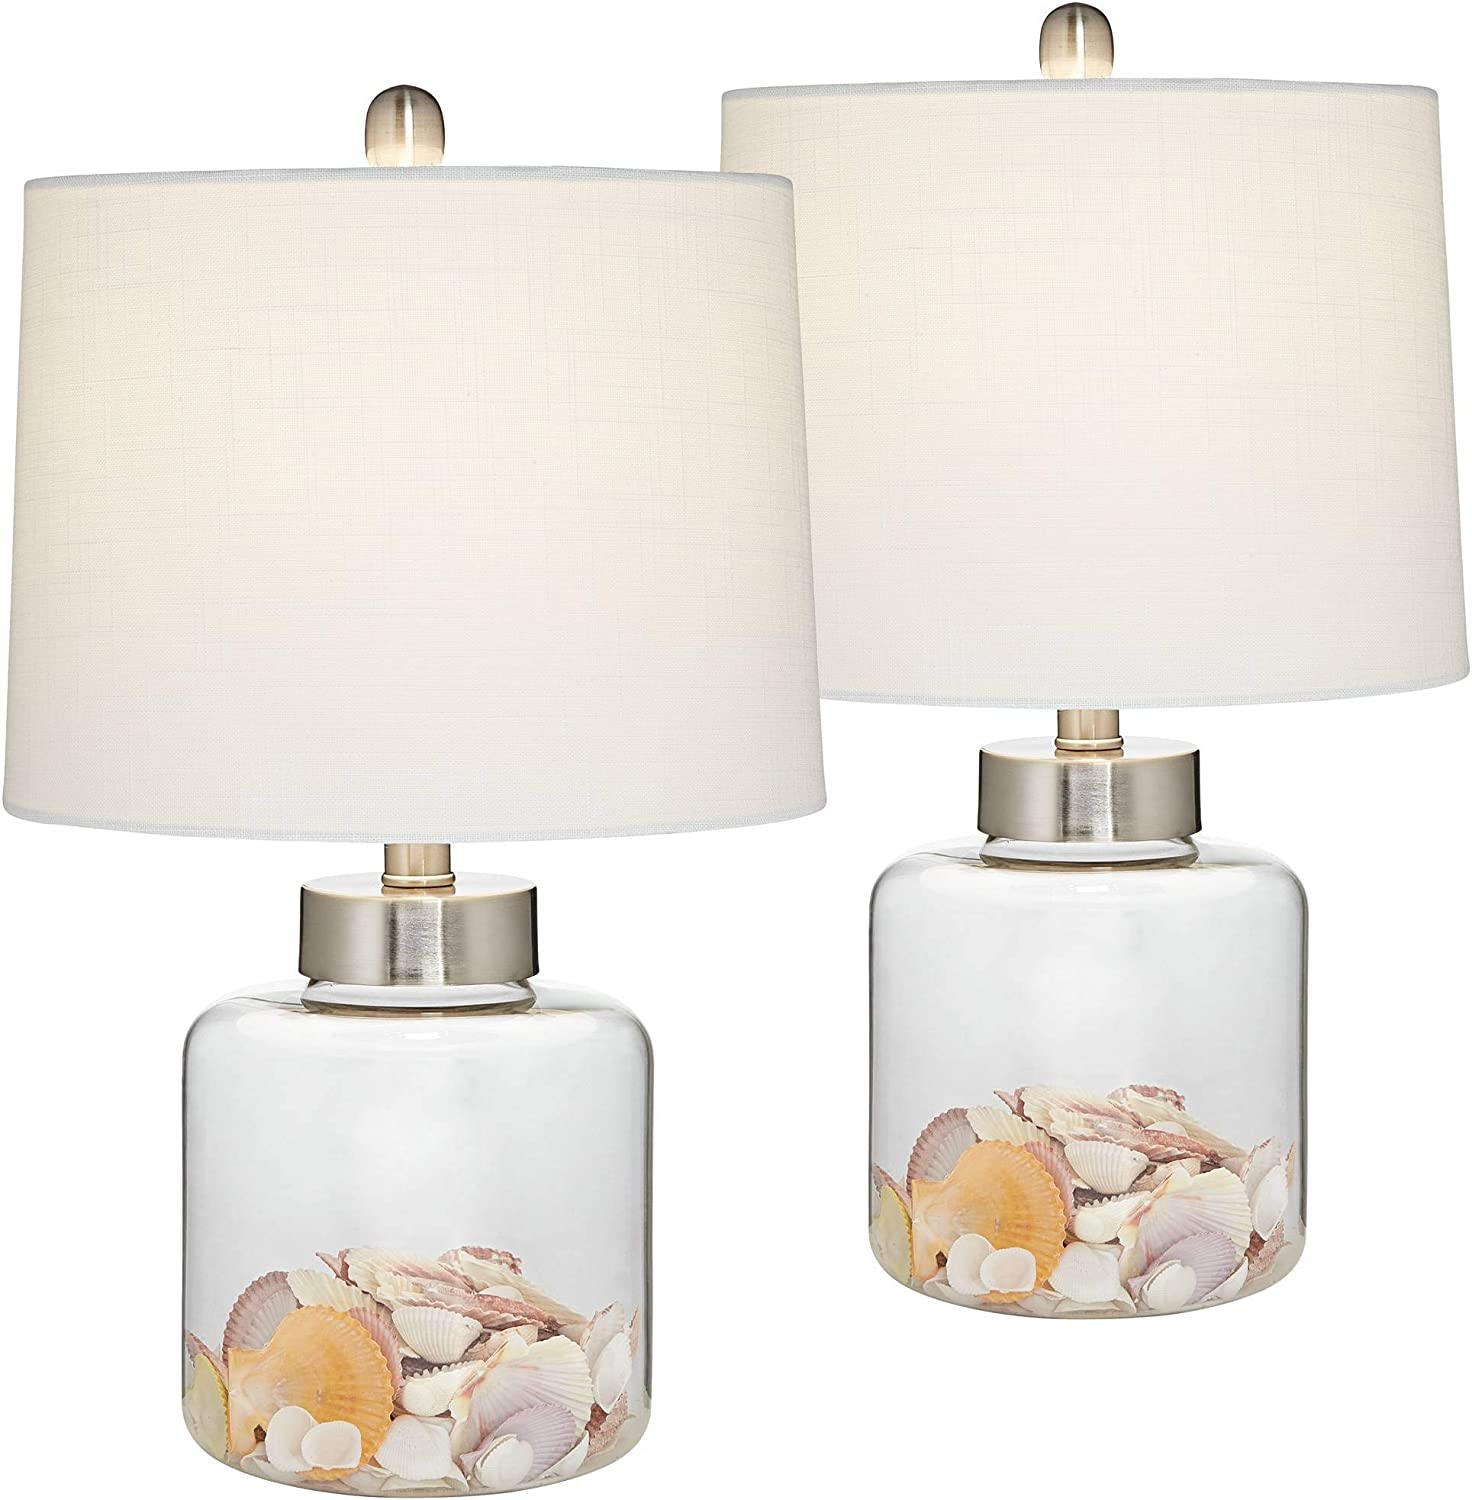 Coastal Accent Table Lamps Set of 2 Small Clear Glass Fillable Shells White Drum Shade for Living Room Family Bedroom - 360 Lighting